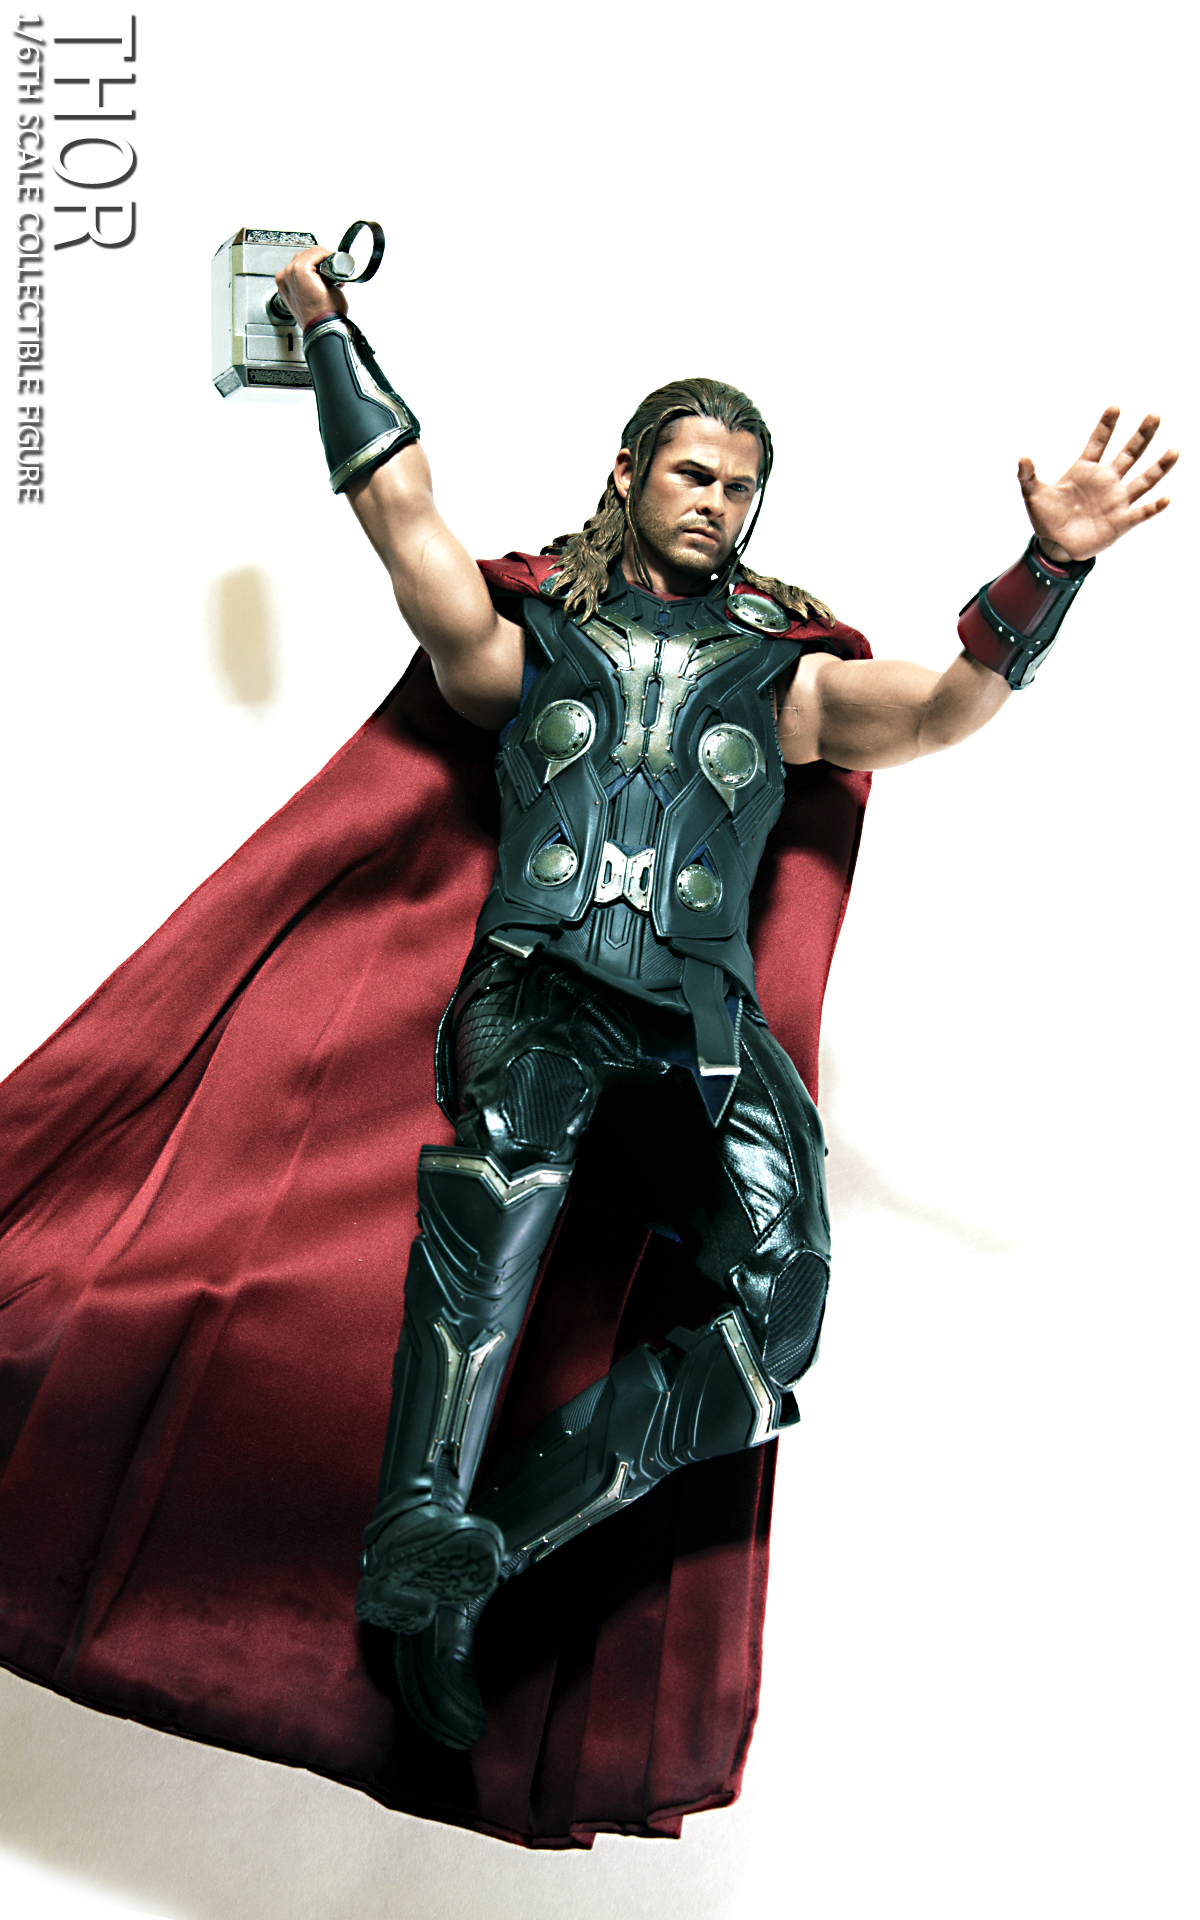 hot-toys-avengers-age-of-ultron-thor-picture-02